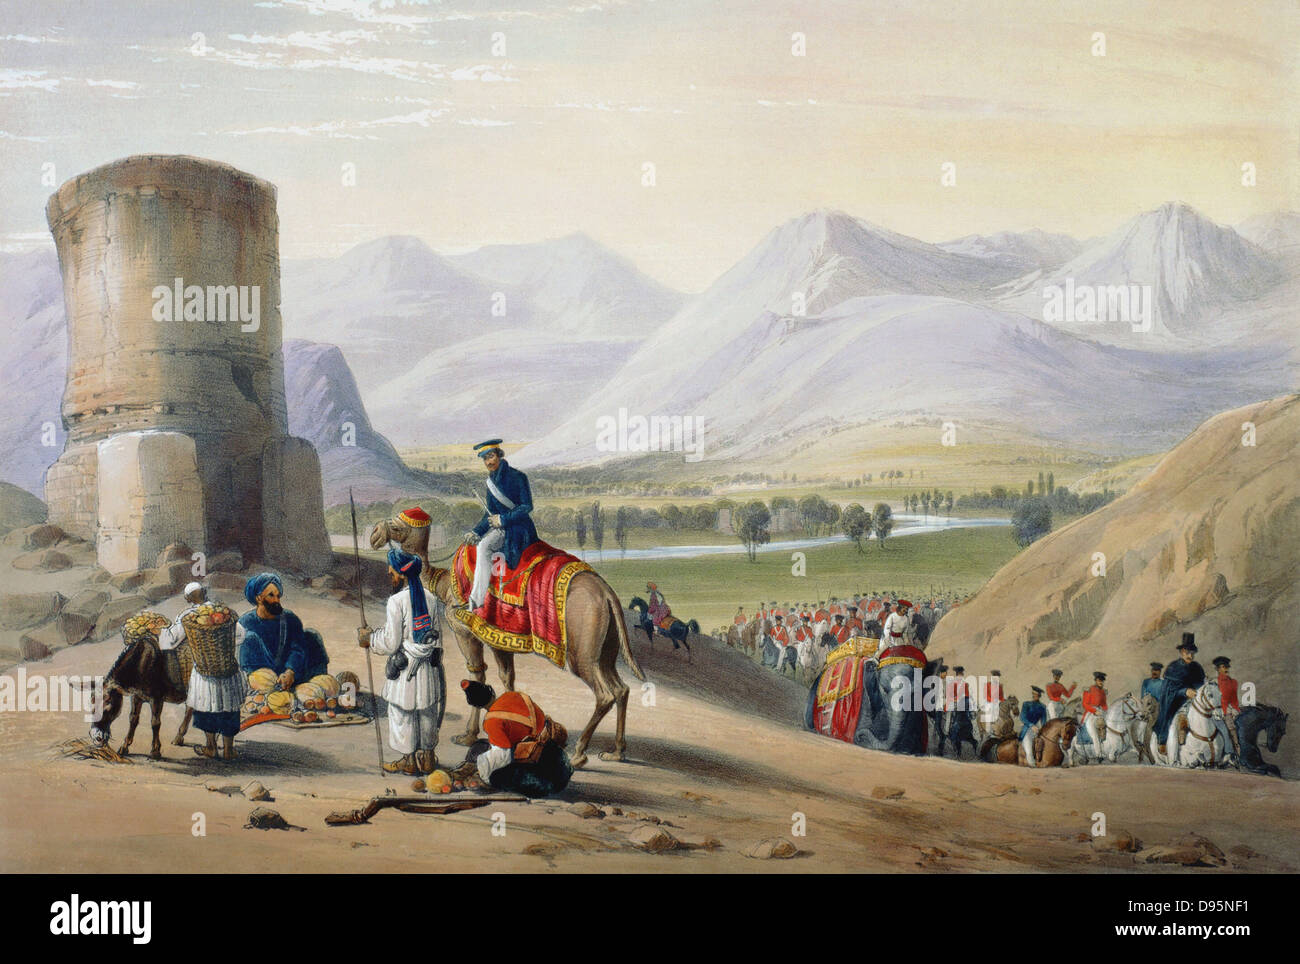 First Anglo-Afghan War 1838-42: British army passing through Meyden valley on march from Meyden to Urghundee.  From - Stock Image